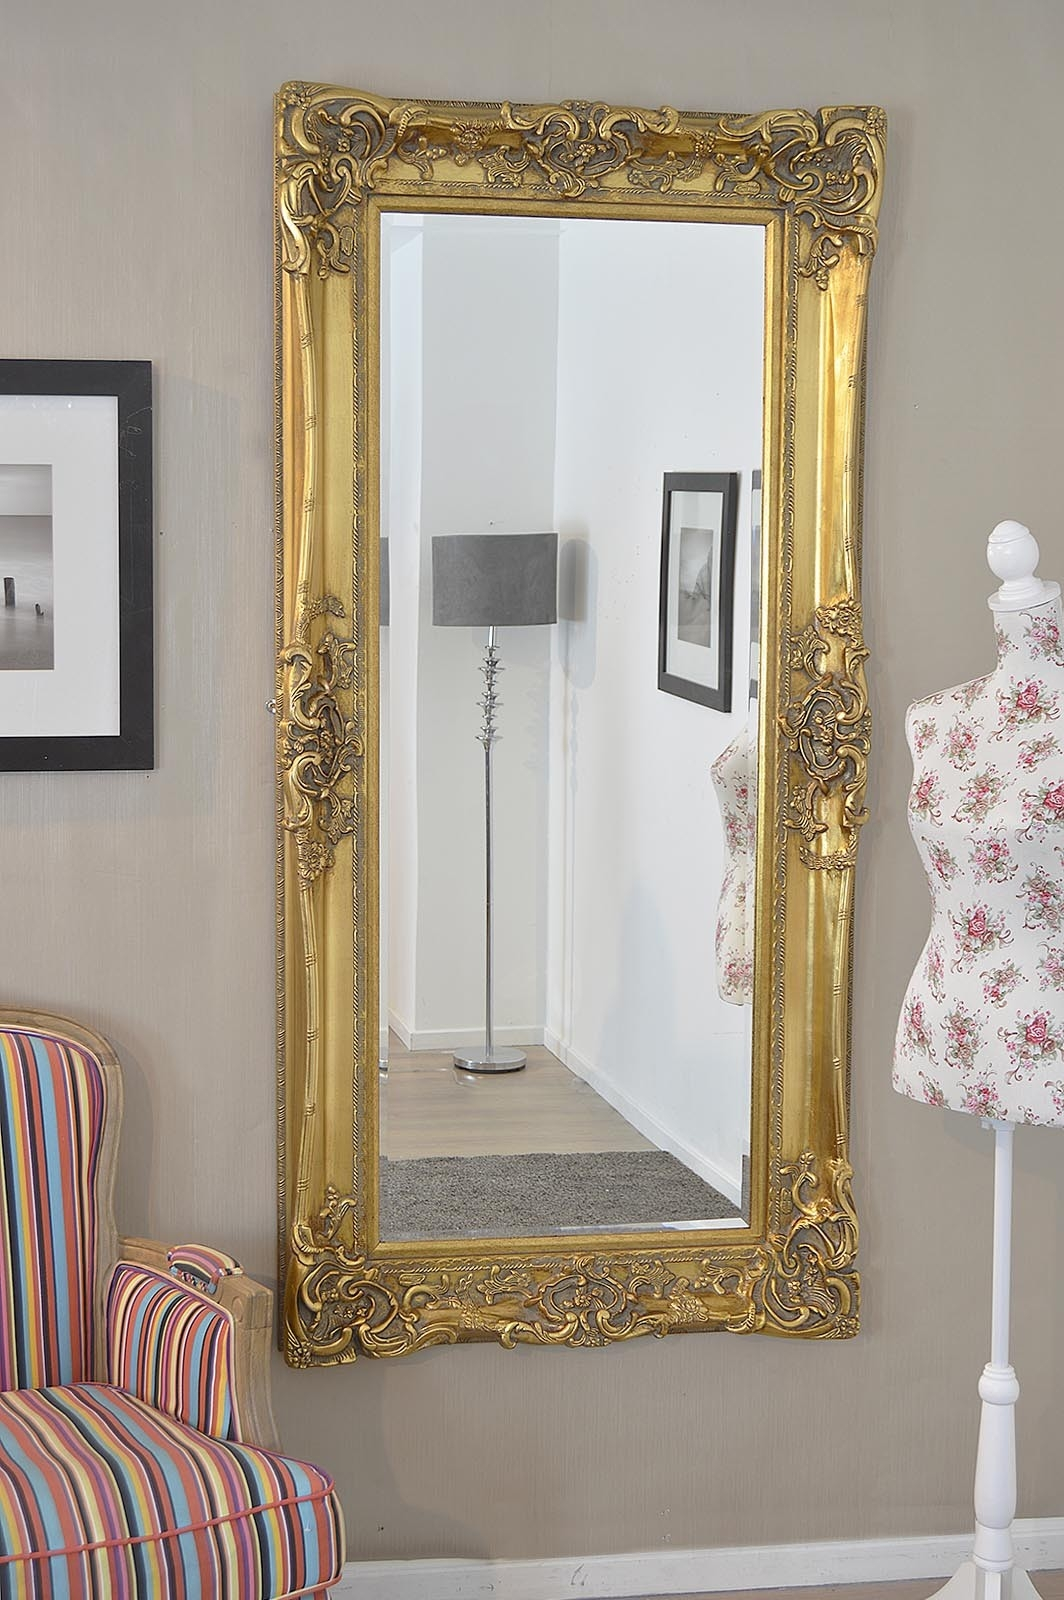 Frame Gold Antique Shab Chic Ornate Wall Mirror 6ft X 3ft 183 X Regarding Gold Shabby Chic Mirror (Image 6 of 15)